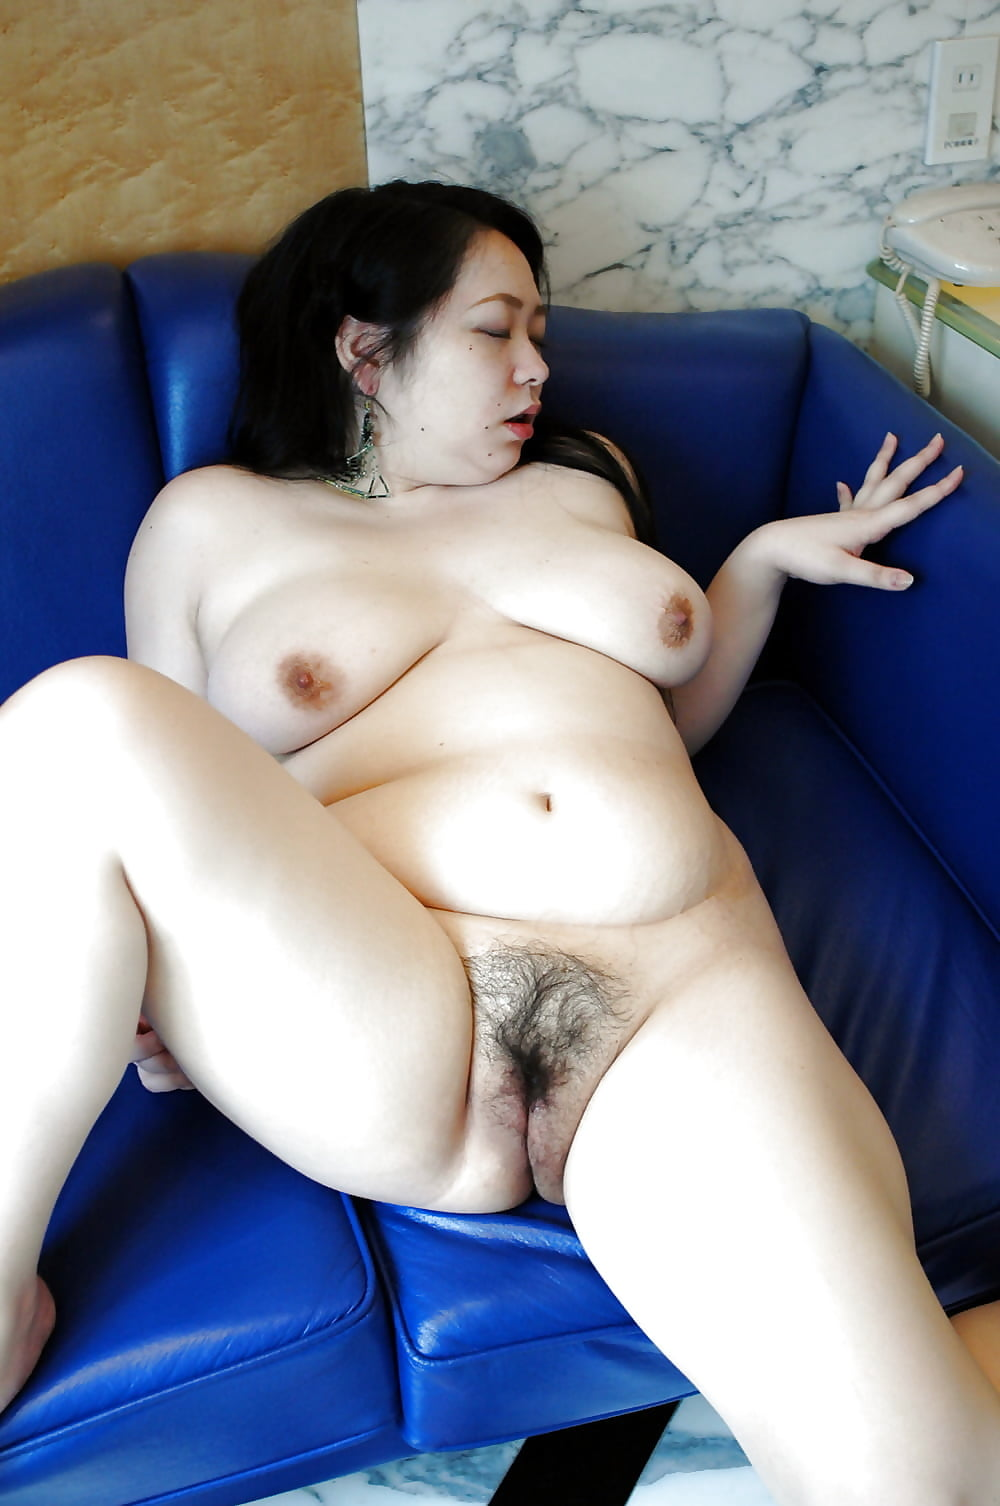 Chubby And Naked Asian Women